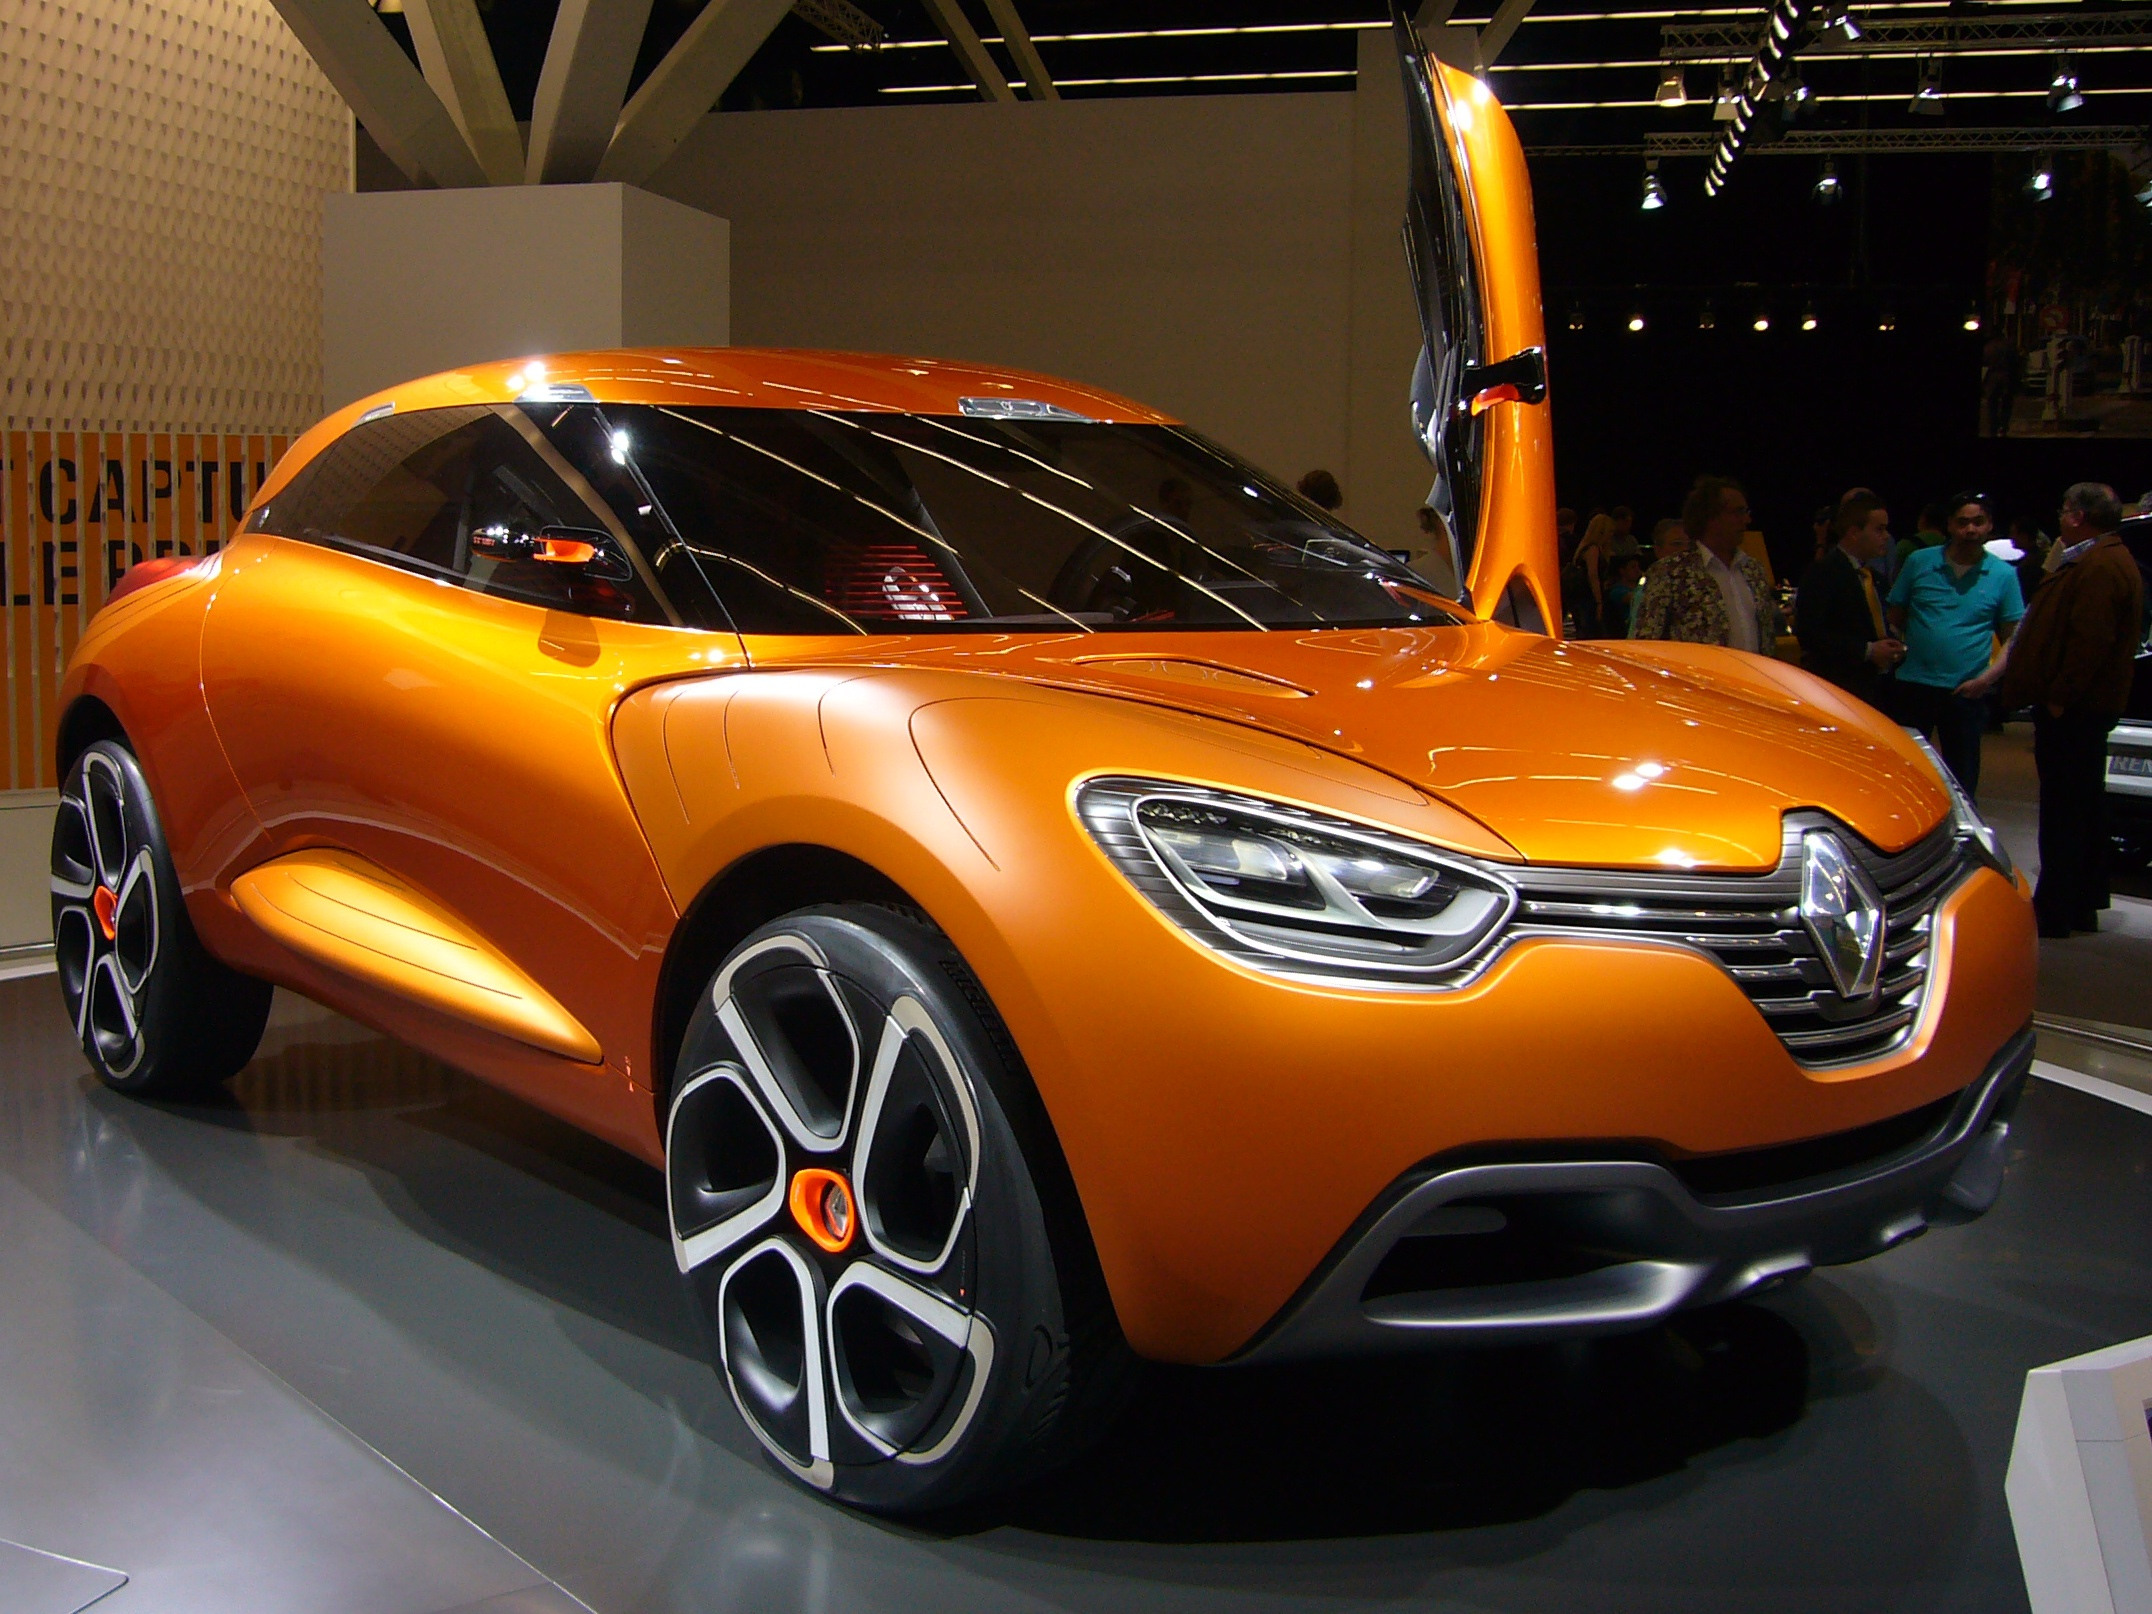 renault pictures #3